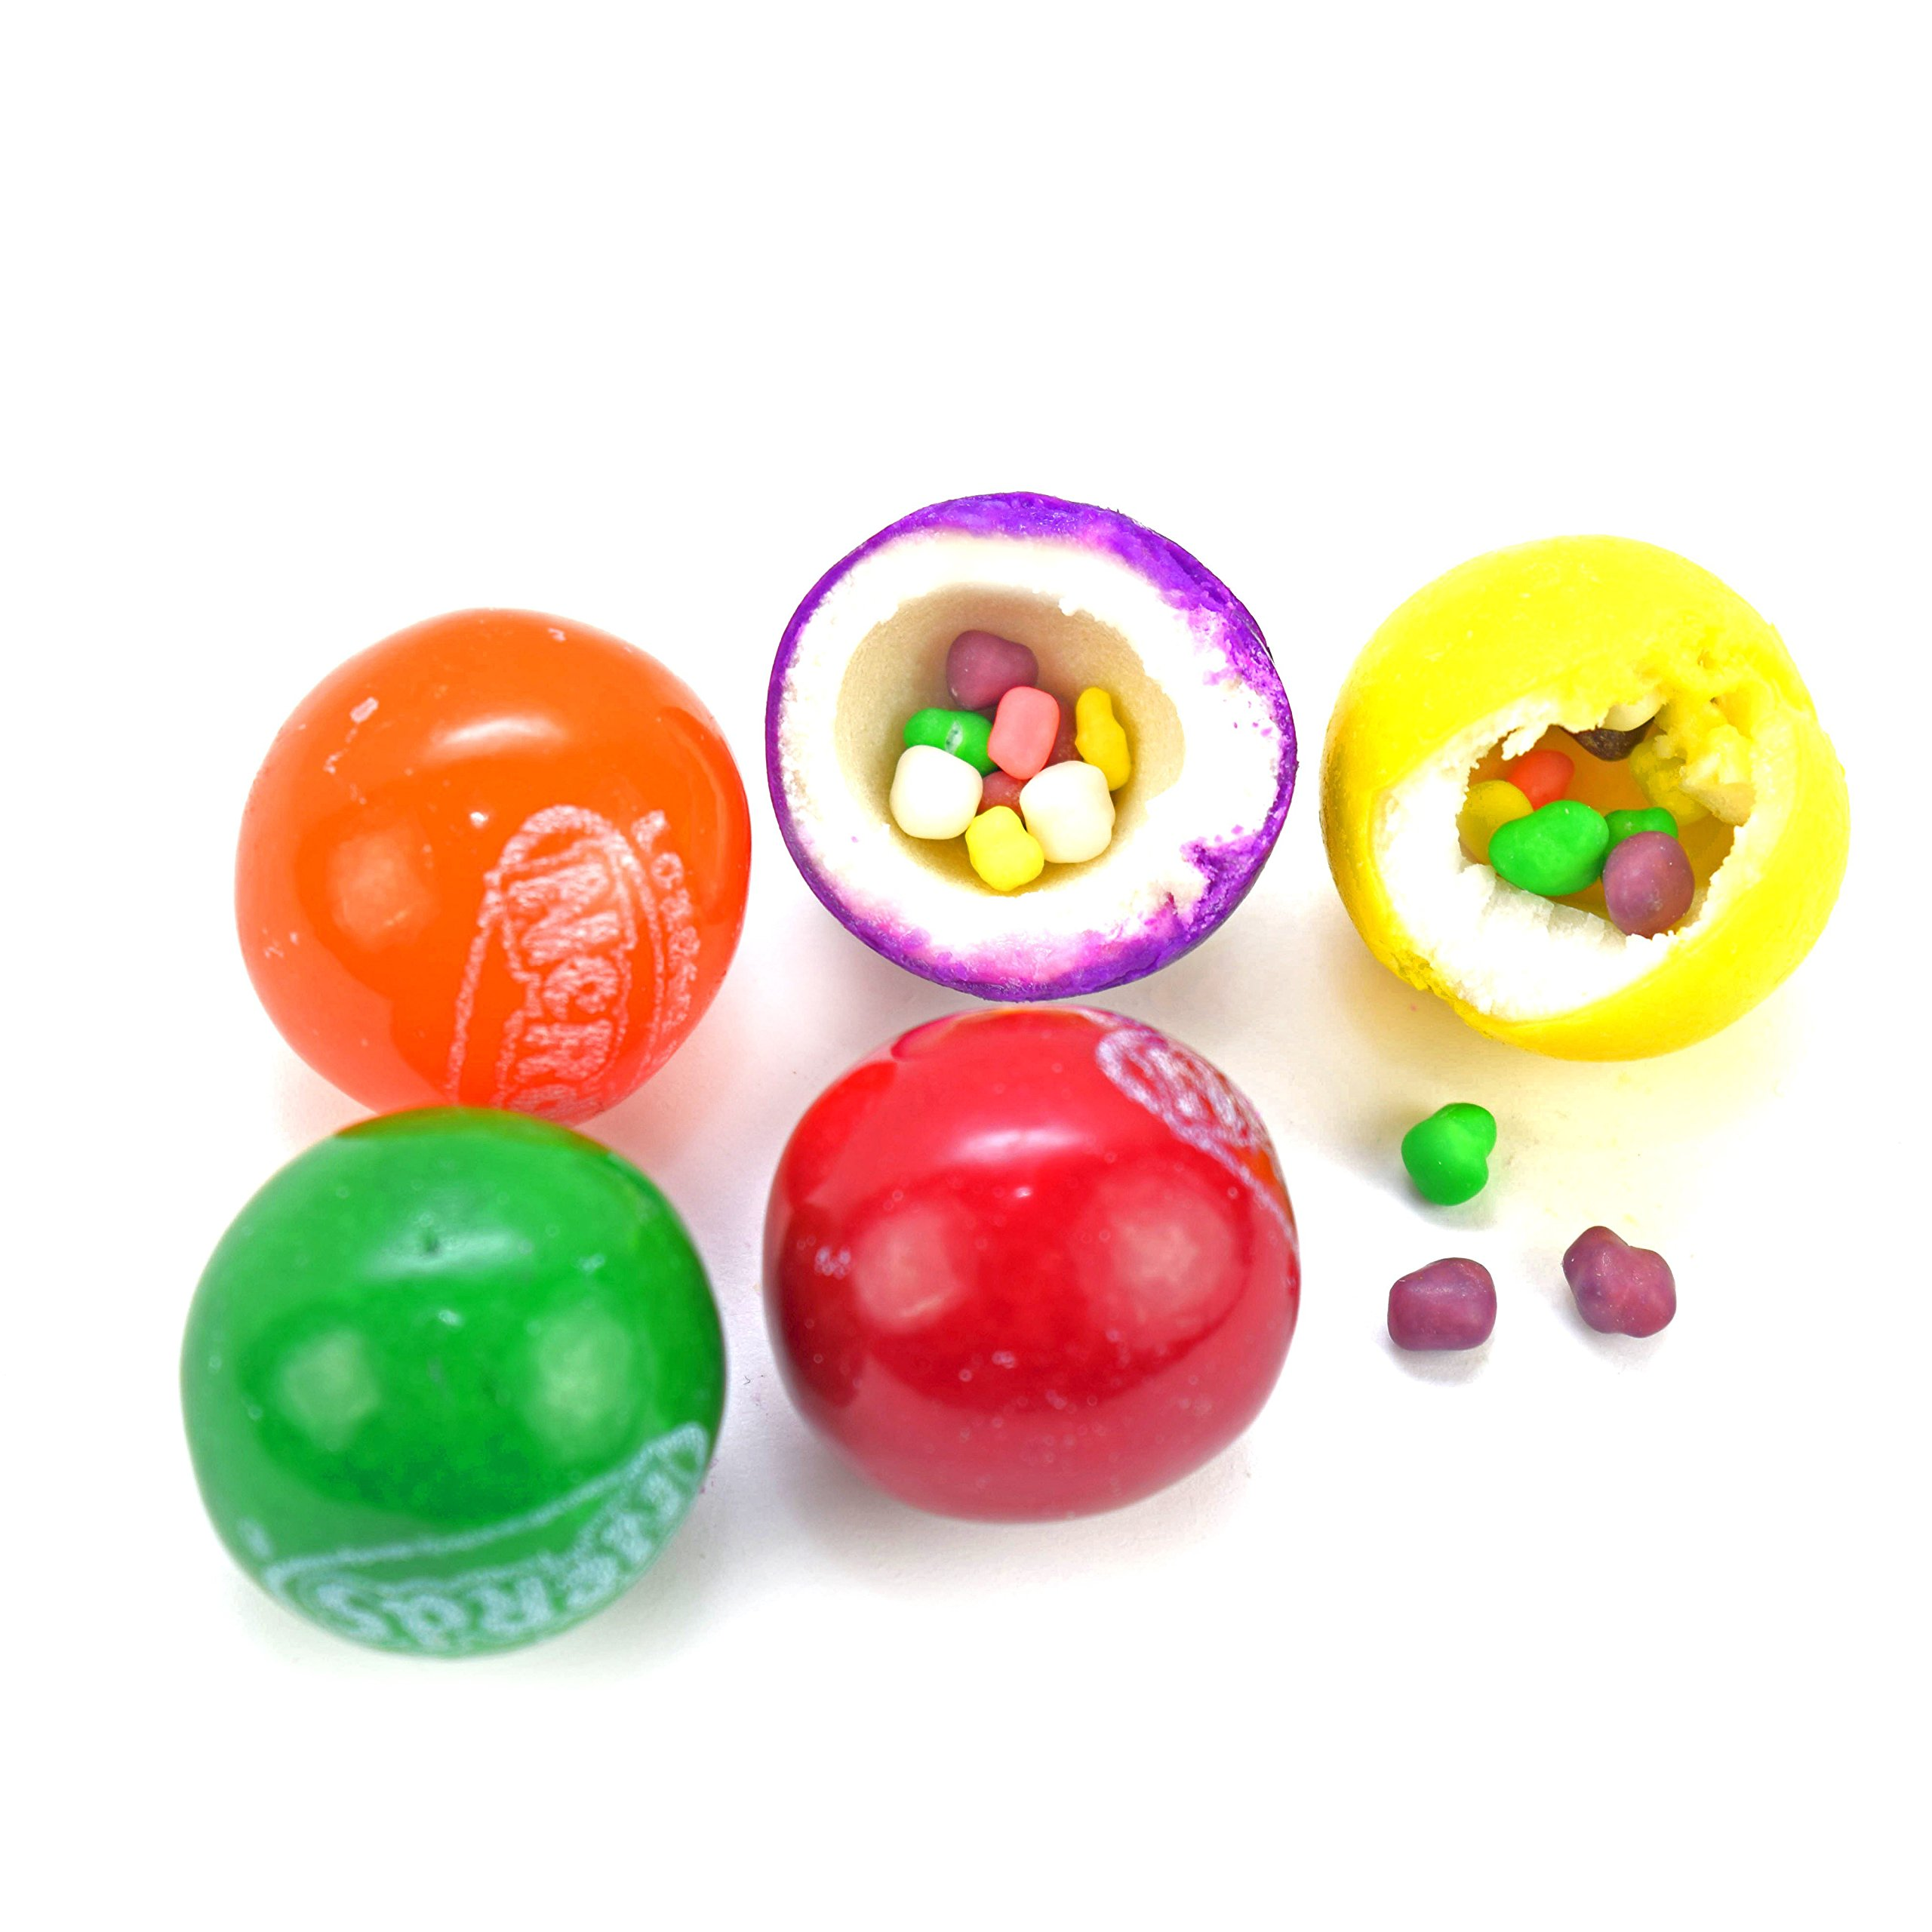 NERDS Filled Gumballs in Assorted Flavors - 850 Count With Vending Display by AB